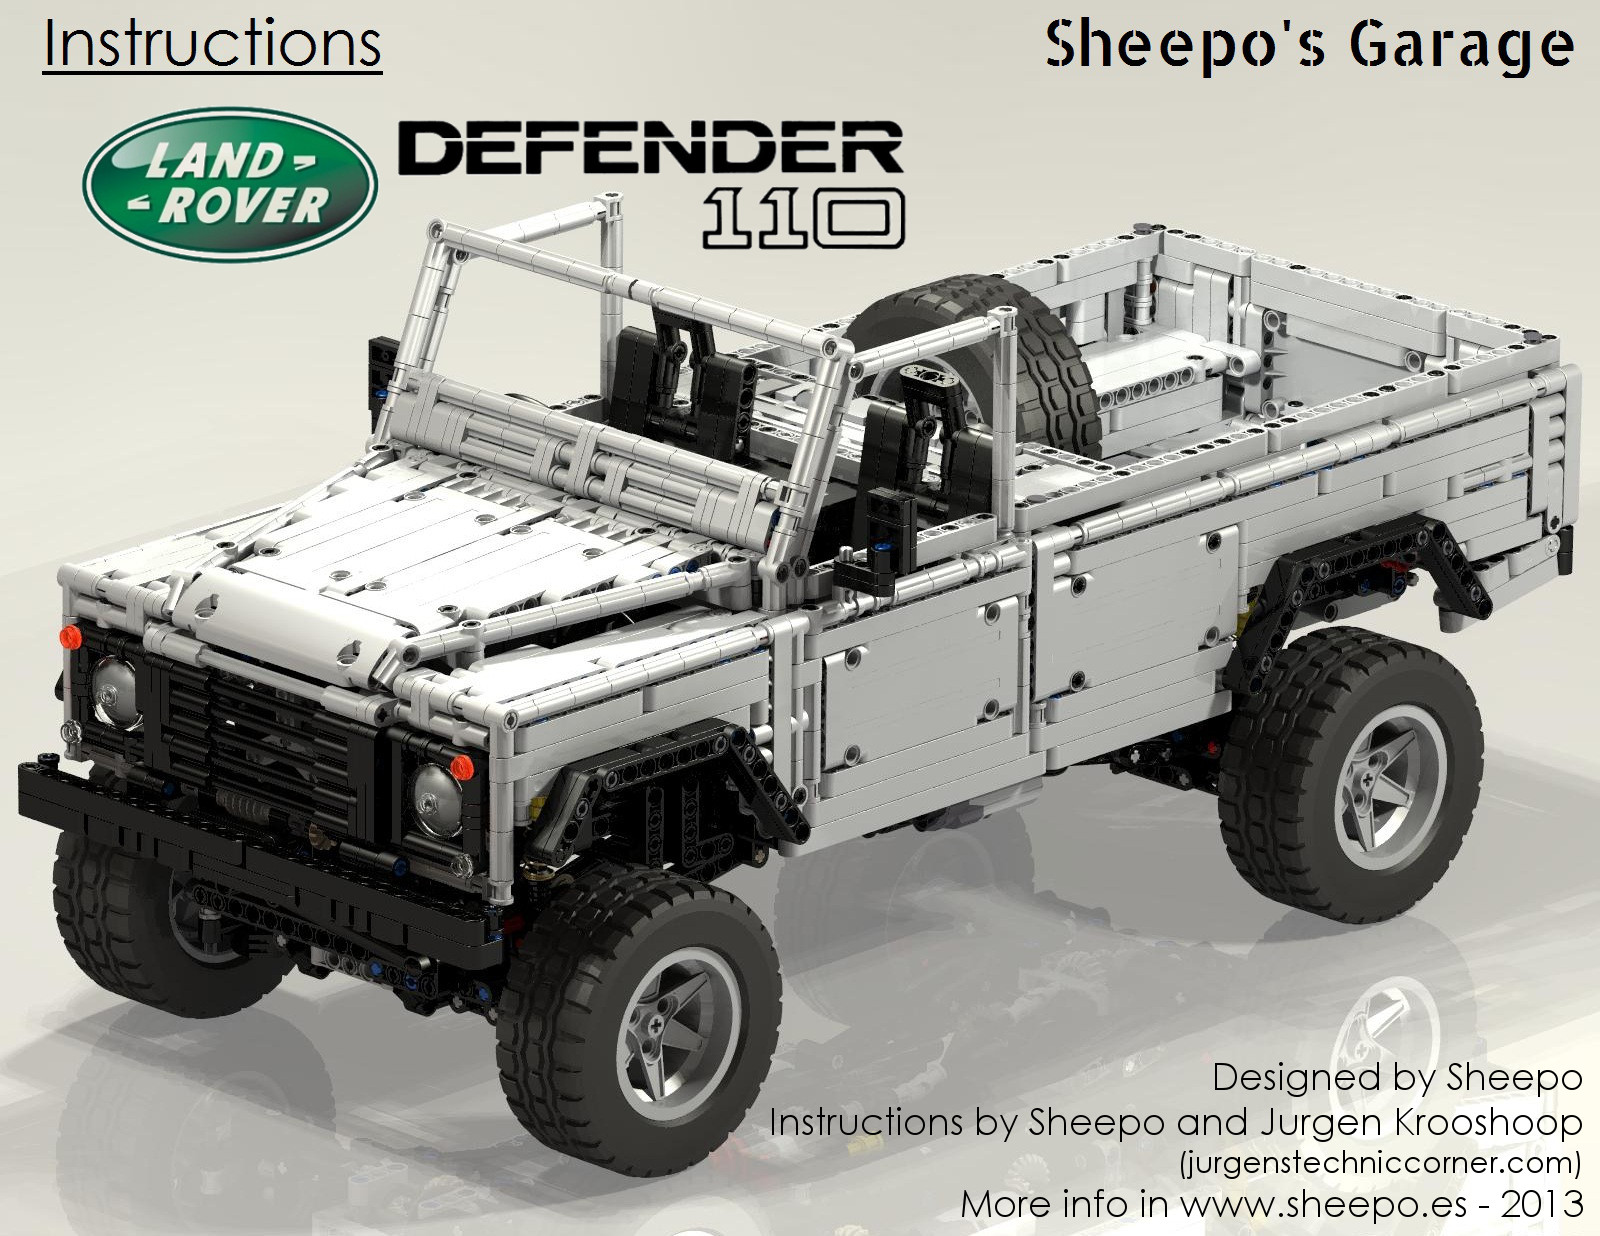 Sheepo s Garage Land Rover Defender 110 instructions are now